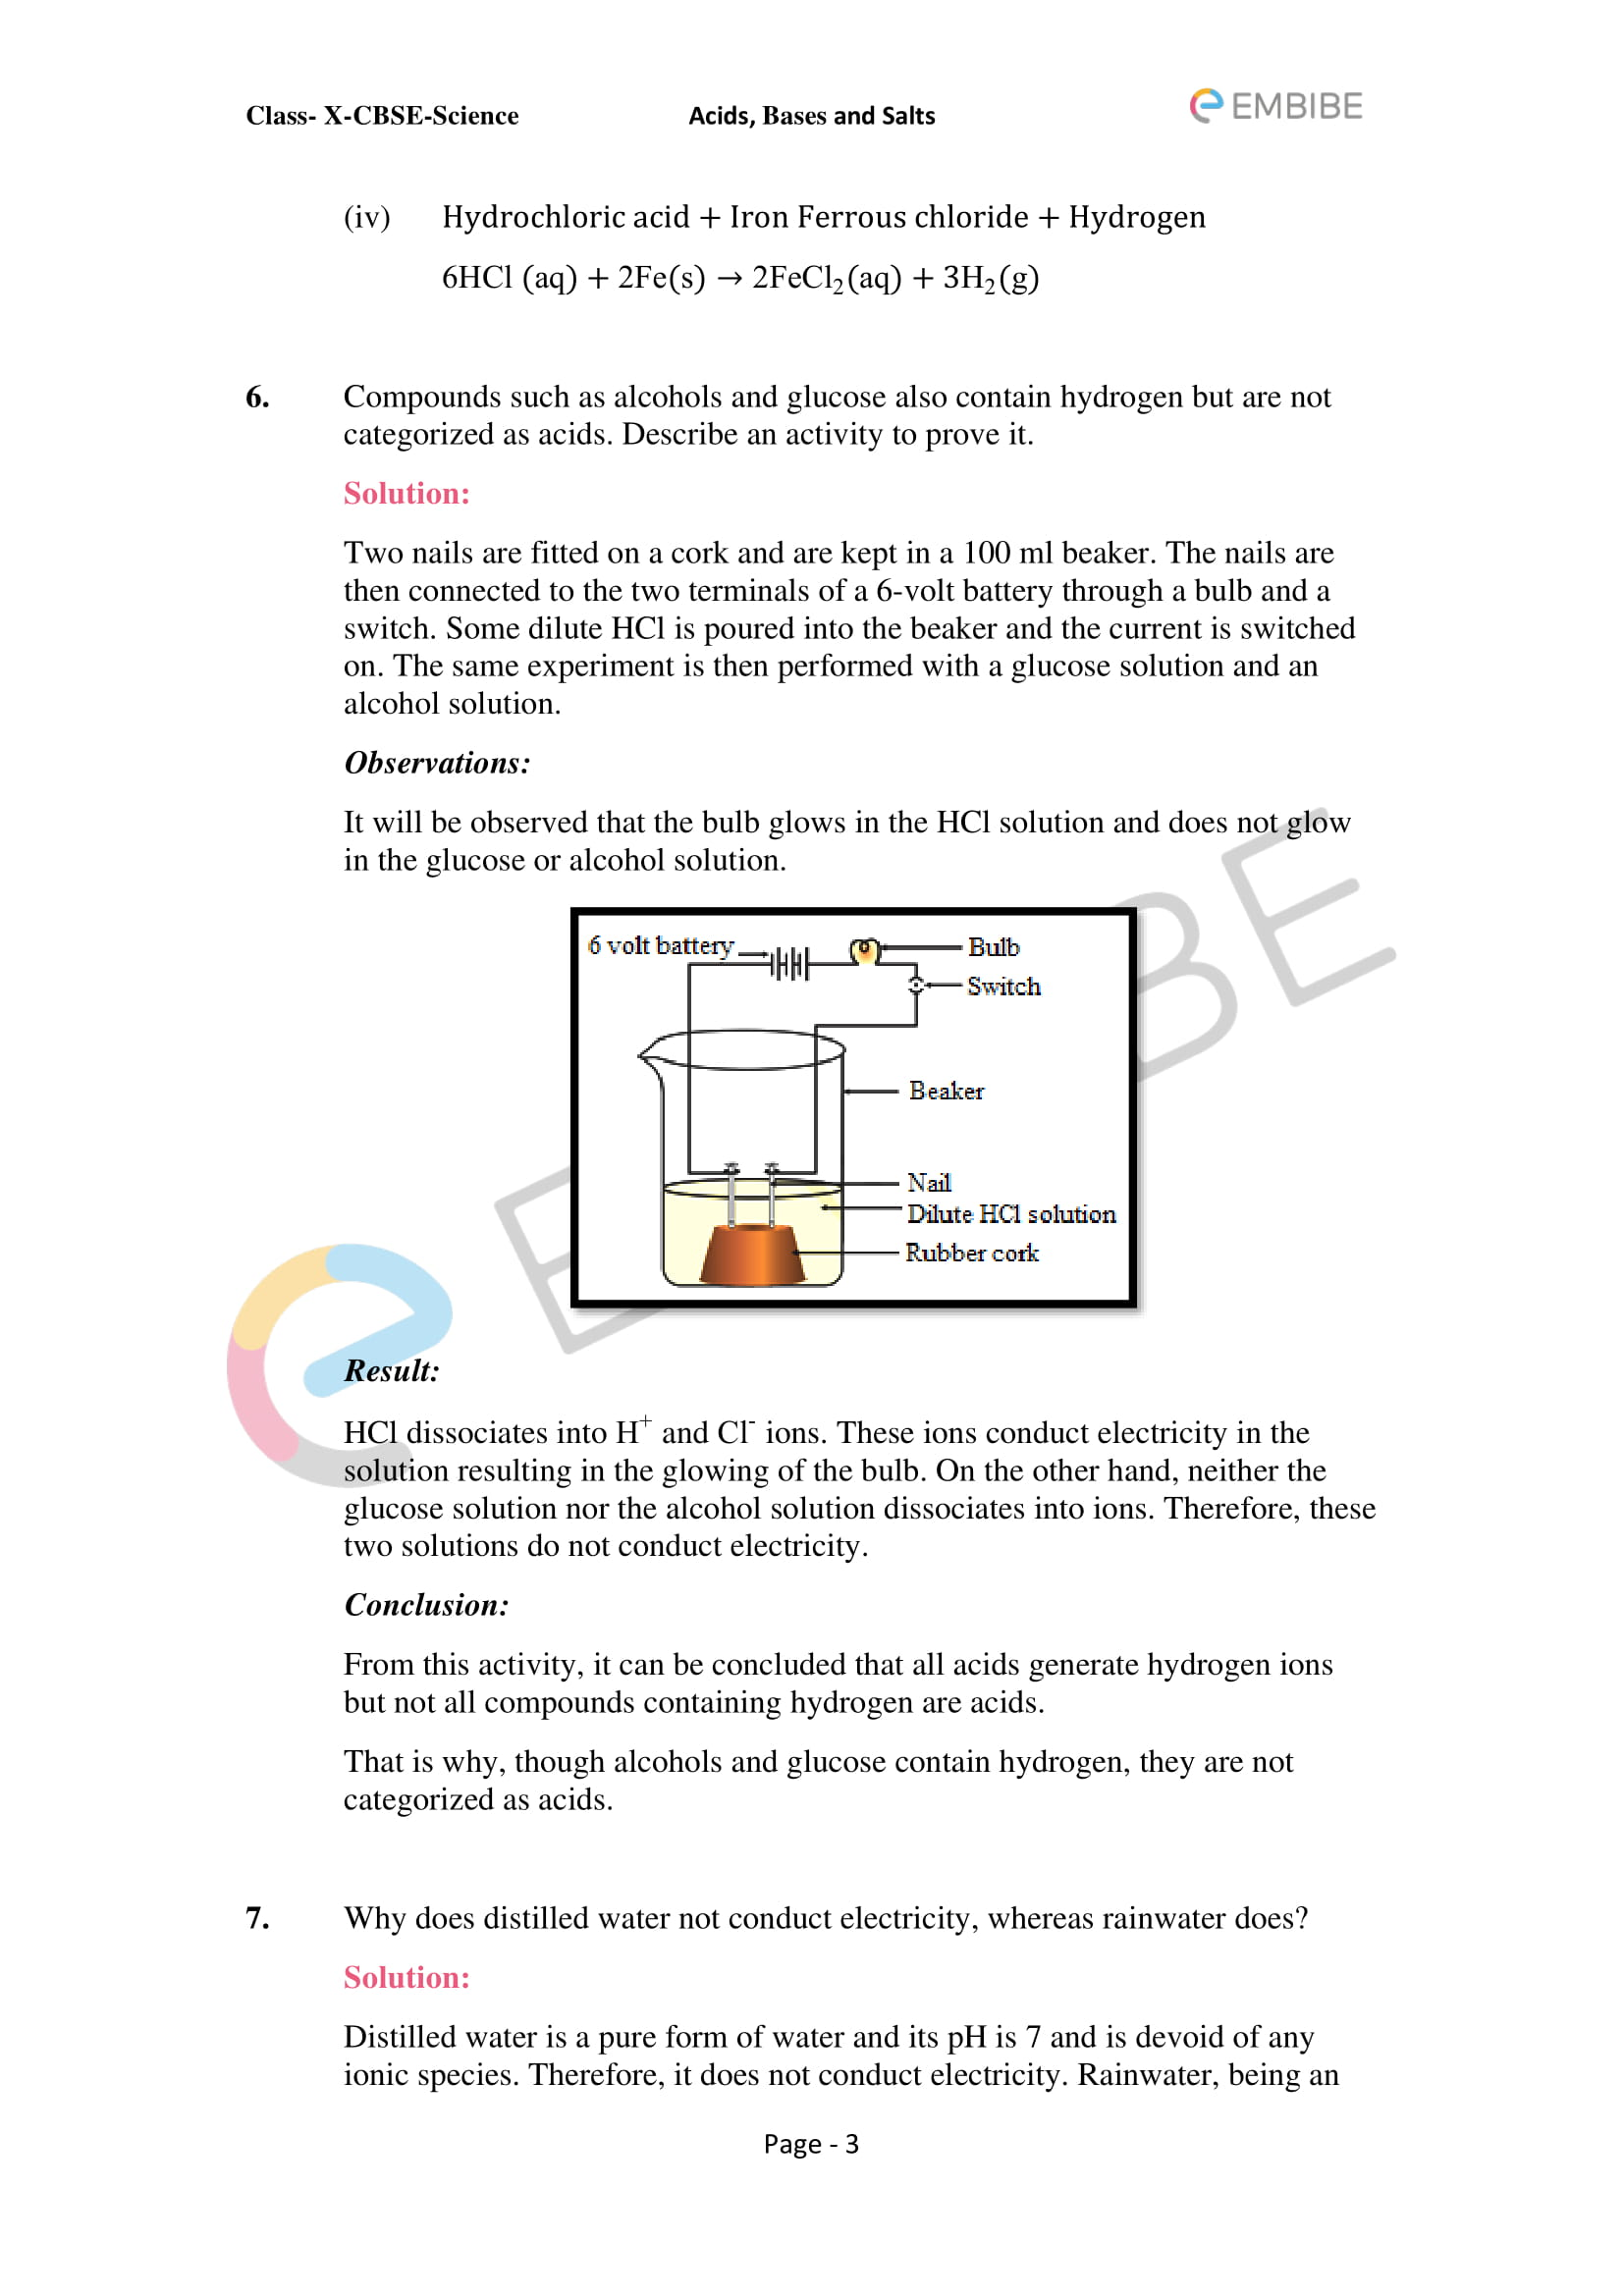 CBSE NCERT Solutions For Class 10 Science Chapter 2: Acids, Bases & Salts - 3